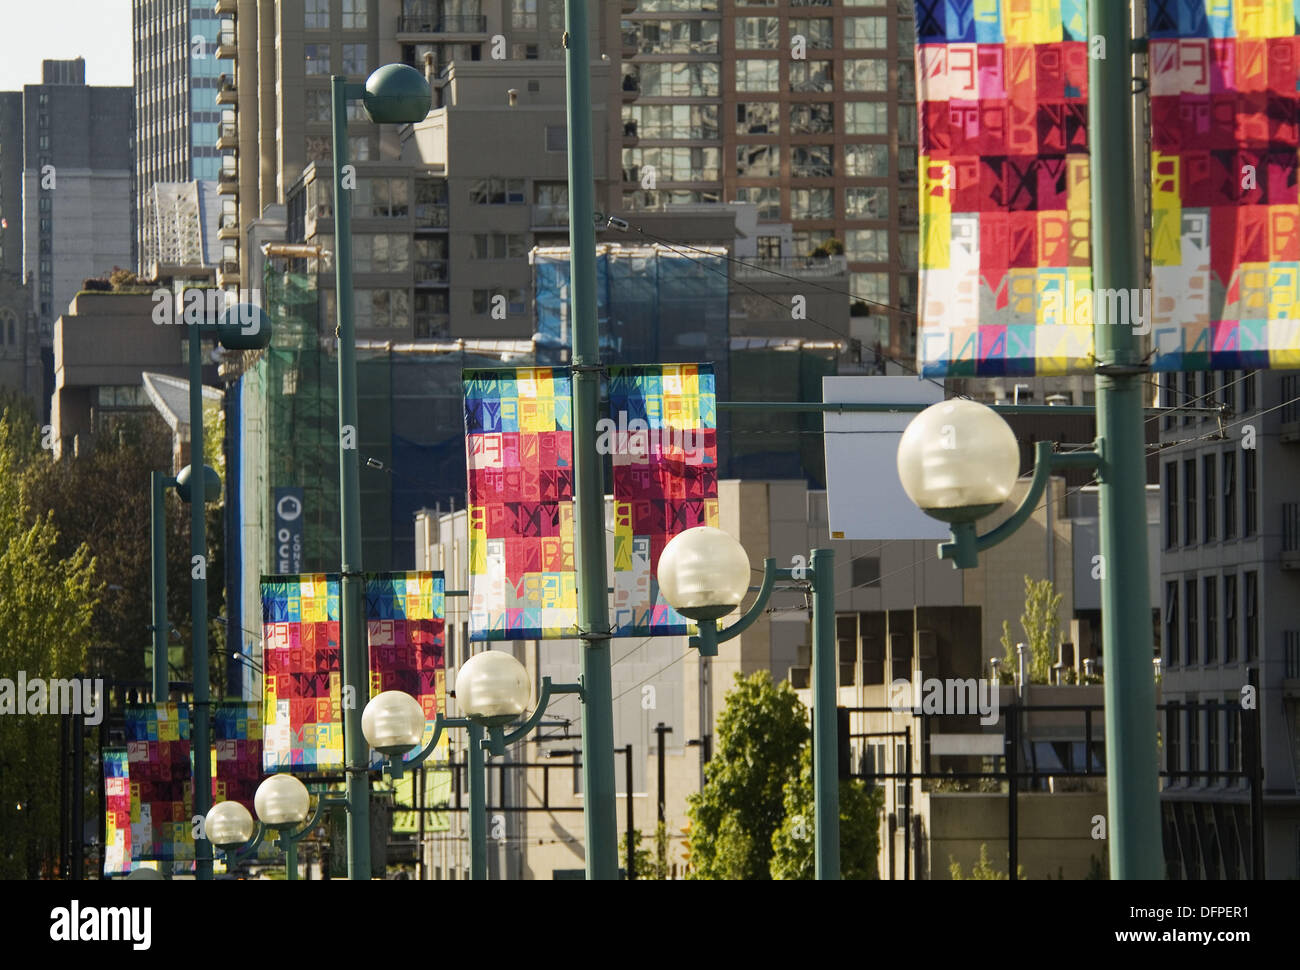 Banners in downtown Vancouver by artist Bratsa Bonifacho. BC, Canada - Stock Image